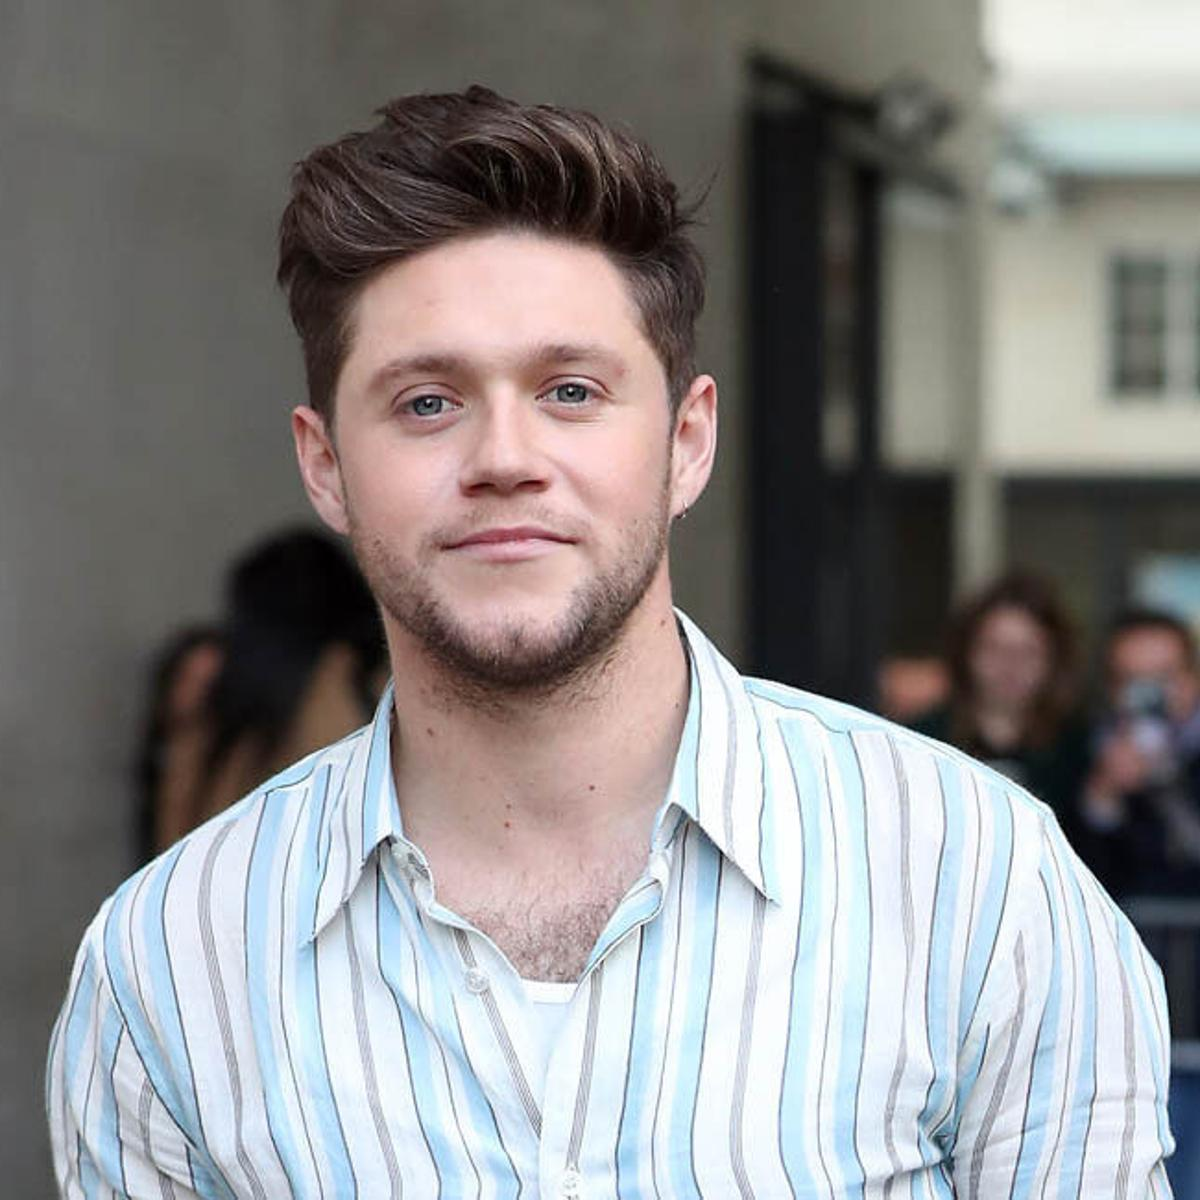 Niall Horan He Appears In Public For The First Time With His Girlfriend